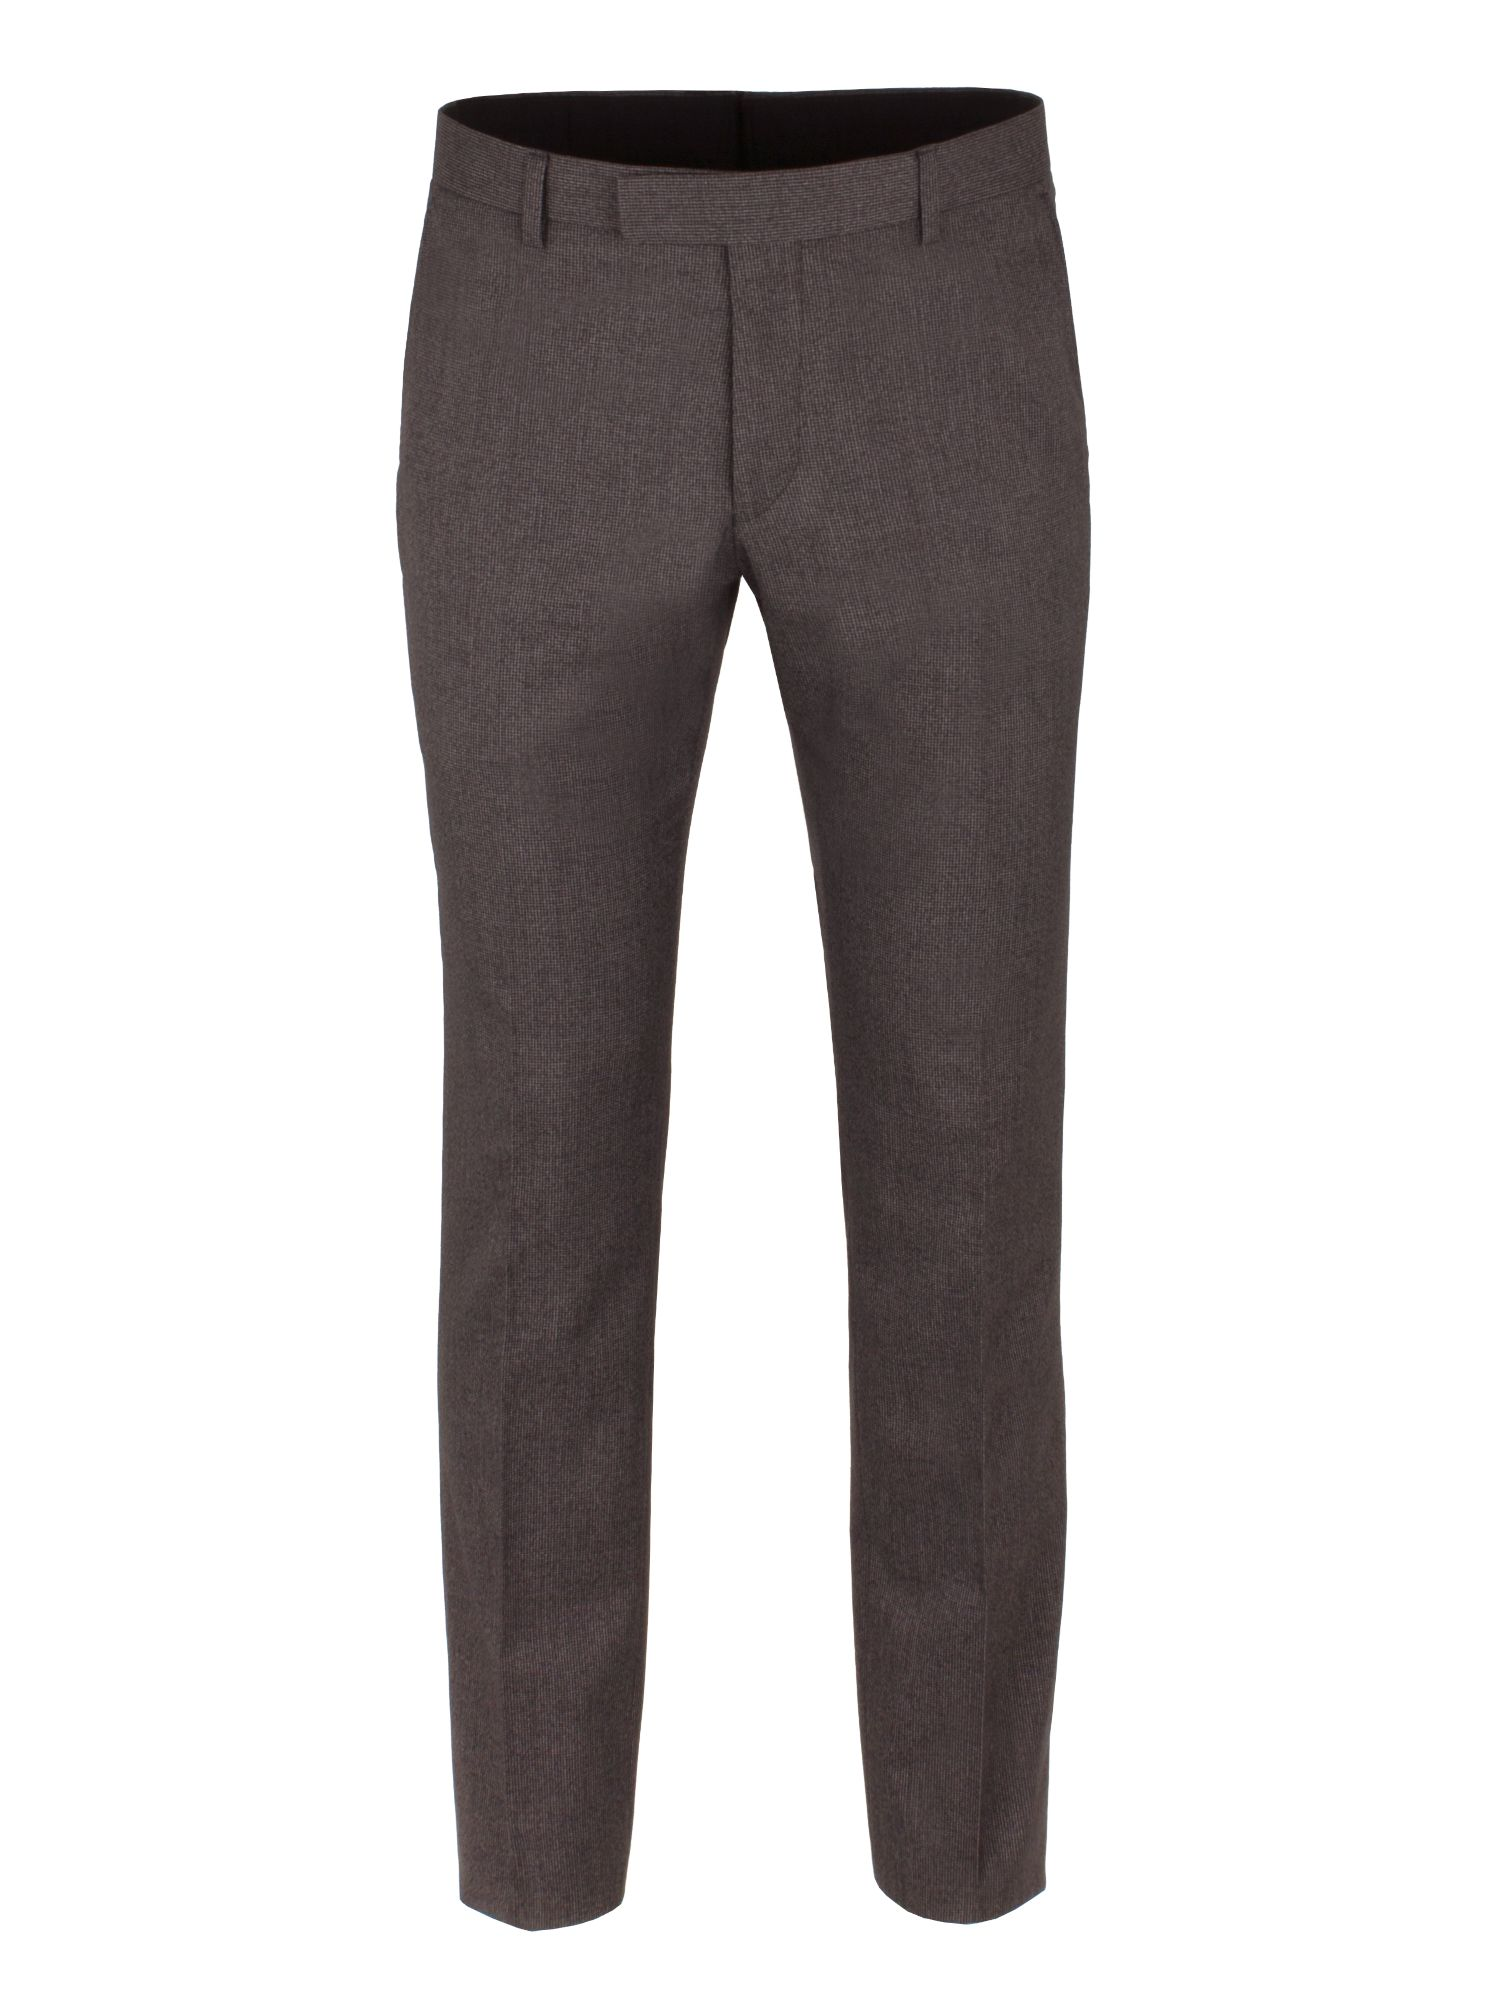 Limehaus Men's Limehaus Grey Puppytooth Trousers, Grey